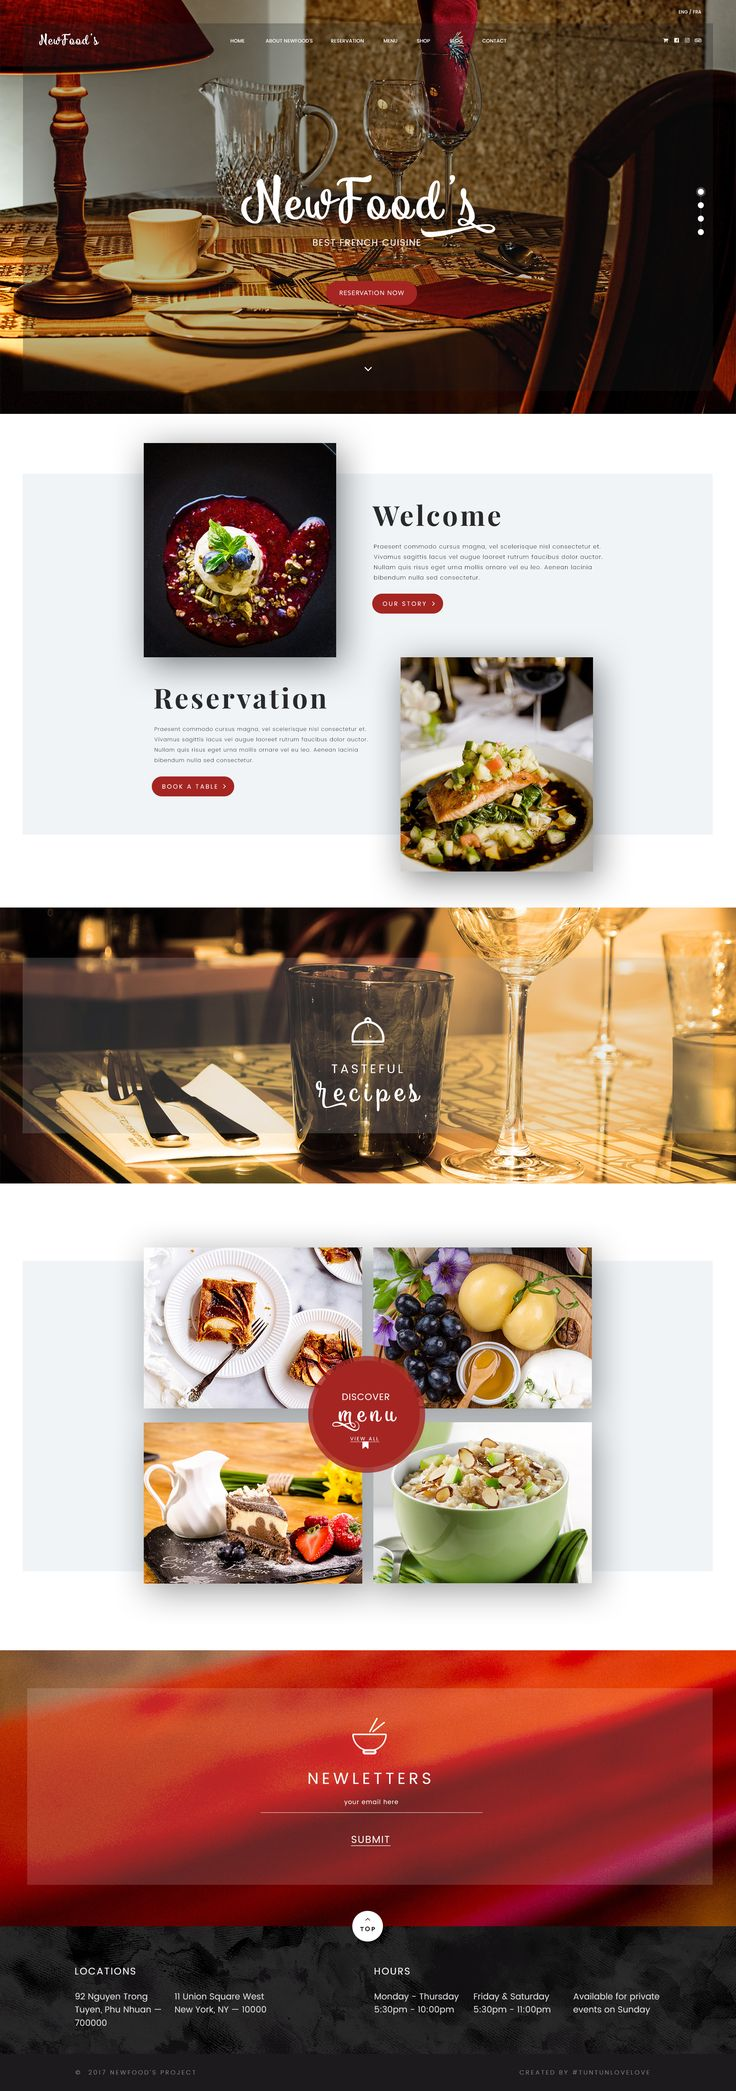 NewFood's | is a daring PSD Template build to help restaurant and other culinary owners to shape an experience that people love and remember. It gives enough freedom to make it your own by tailoring to a specific set of bold needs and preferences.  #cake #clean #creative #customizable, flexible #food #luxury #minimal #modern #onlinestore #professional #responsive #restaurant #service #website #interface